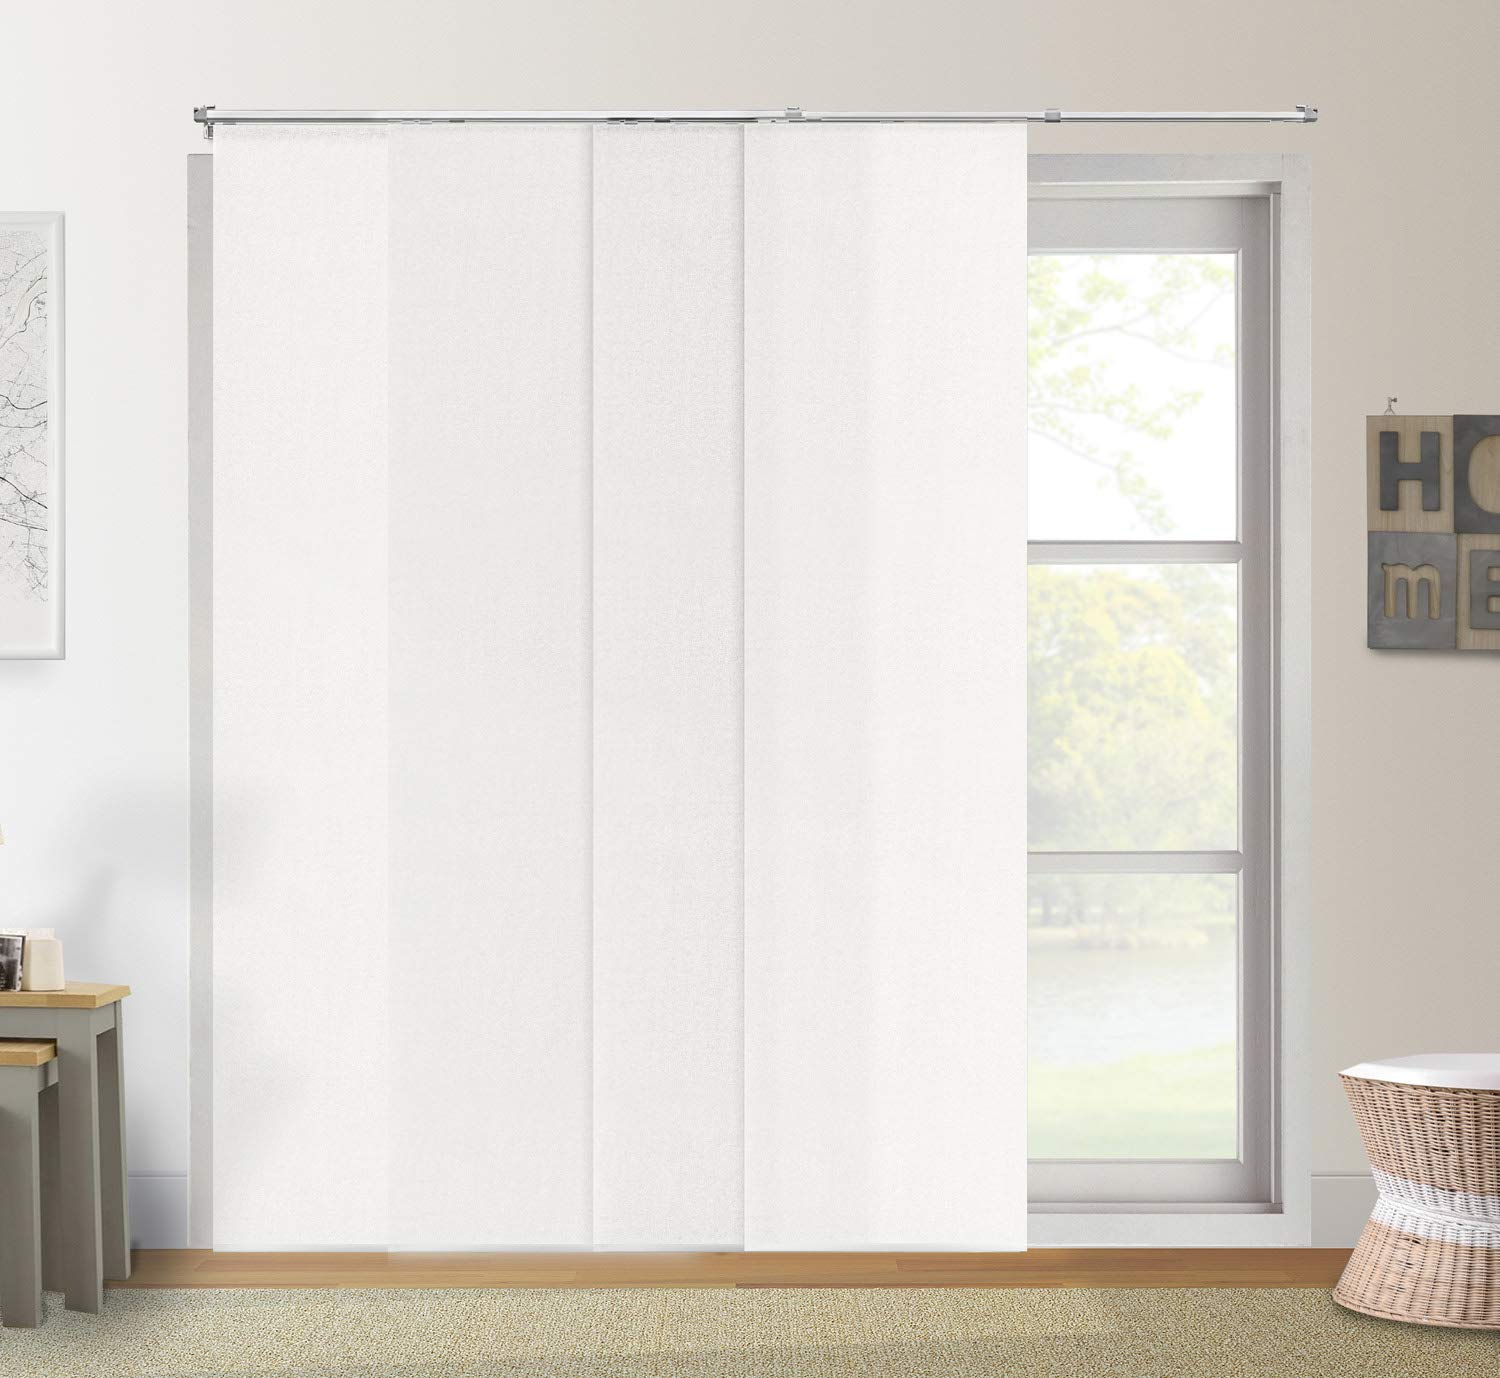 Chicology Adjustable Sliding Panels/Cut to Length, Curtain Drape Vertical Blind, Light Filtering, Privacy, Daily Grey DRSPDG1